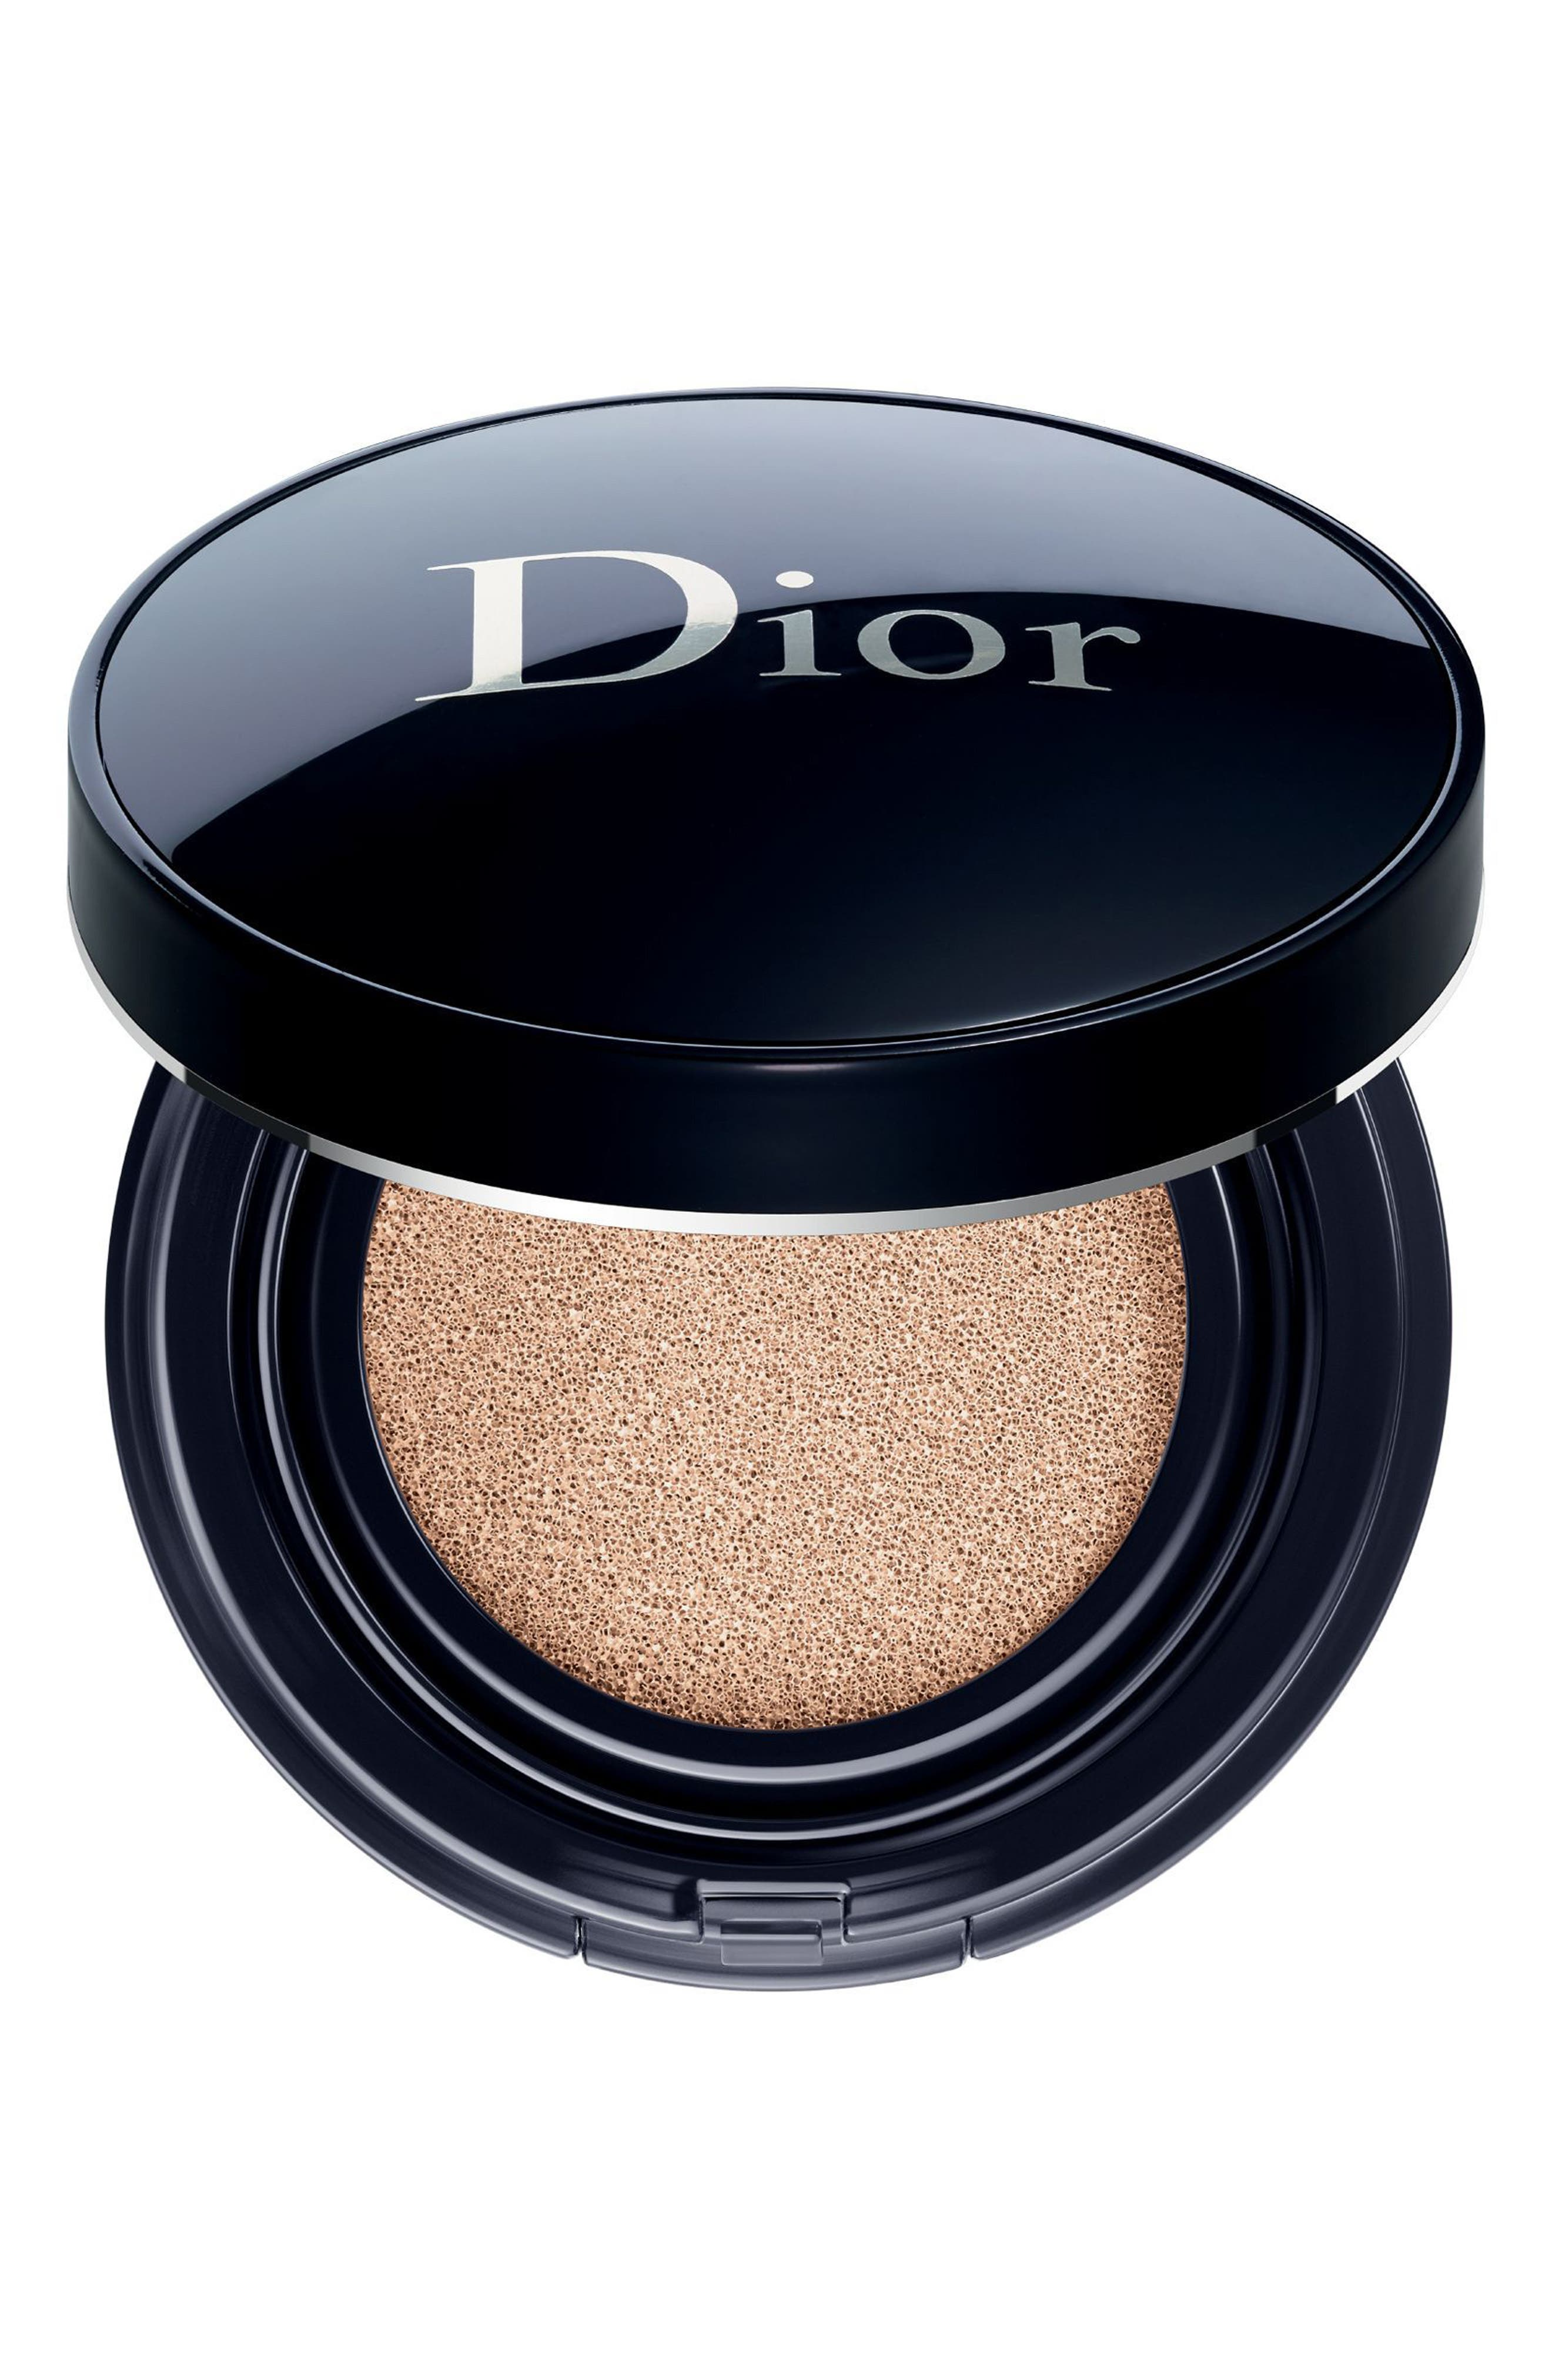 Dior Diorskin Forever Perfect Cushion Foundation Broad Spectrum Spf 35 - 021 Linen